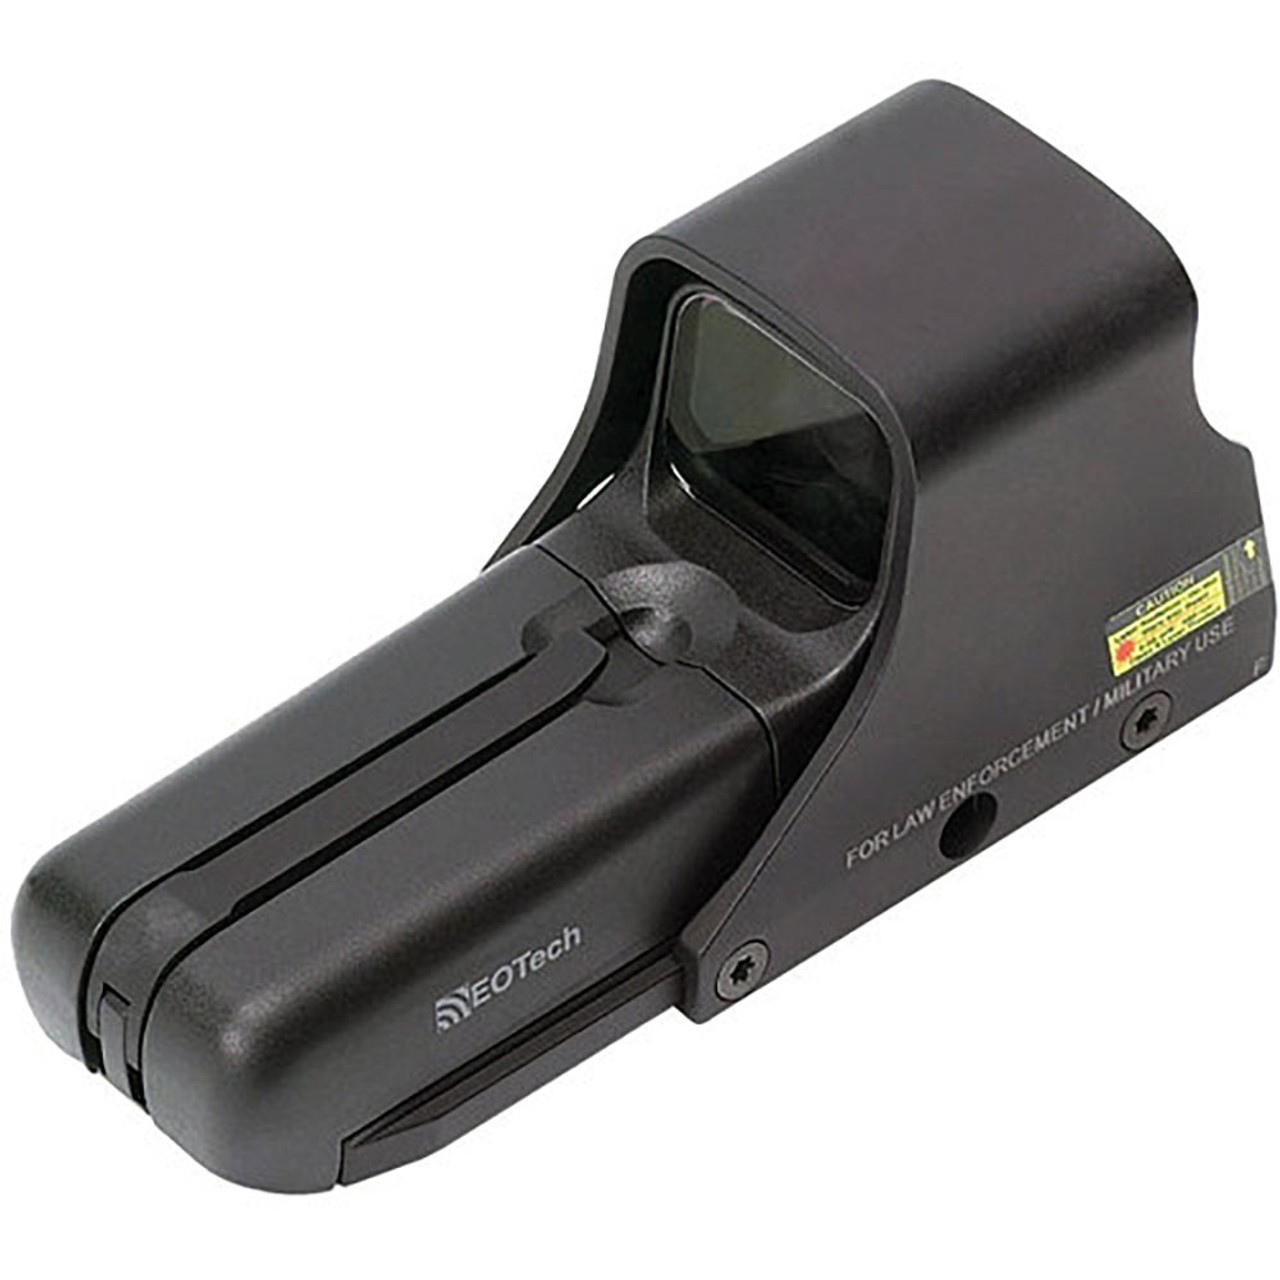 EOTech 552.XR308 Holographic Weapon Sight